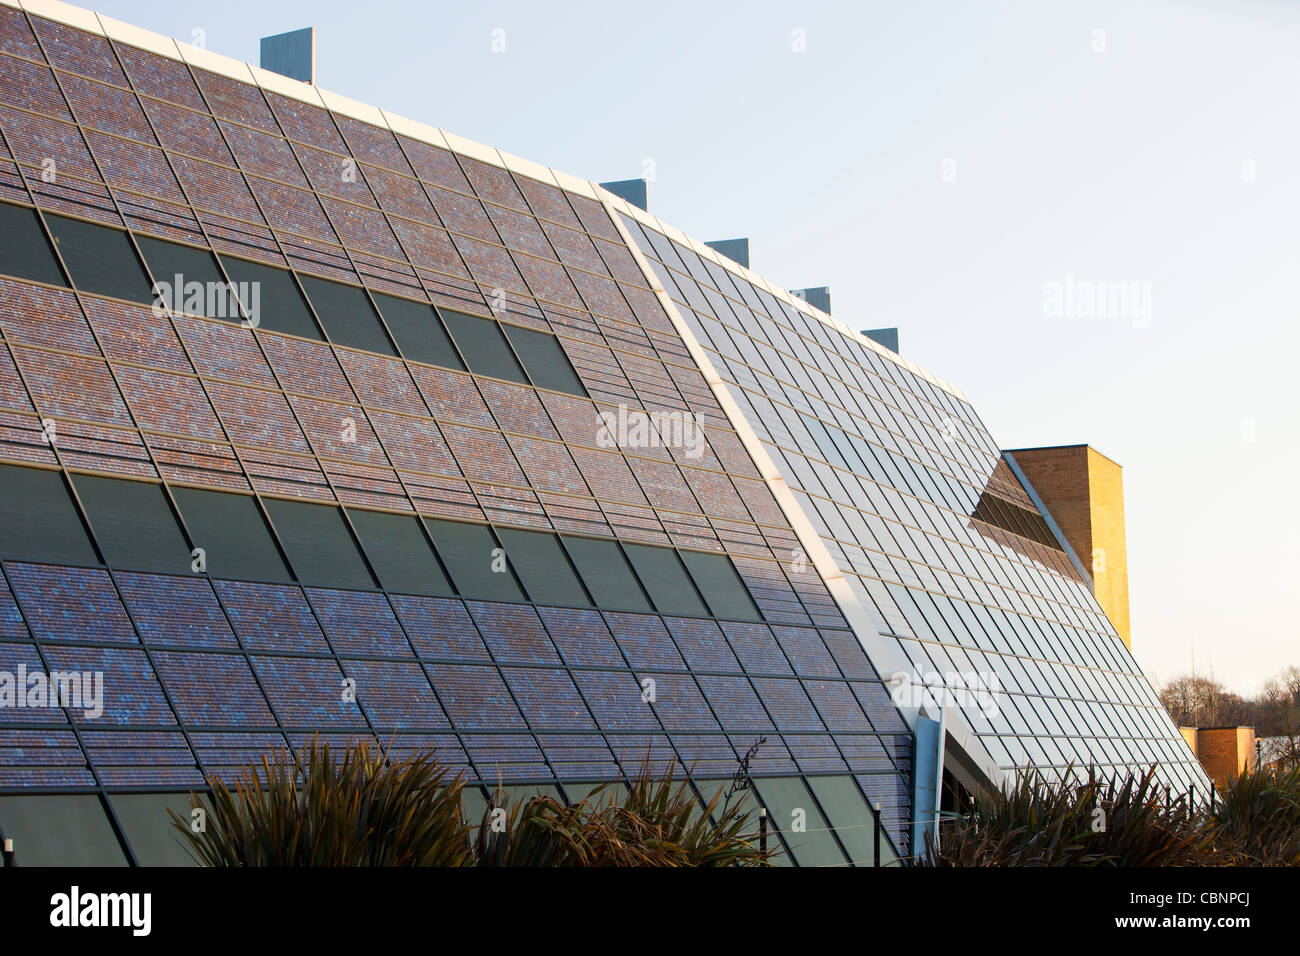 The Solar office on the Doxford International Business Park on the outskirts of Sunderland, North East, UK. Th - Stock Image